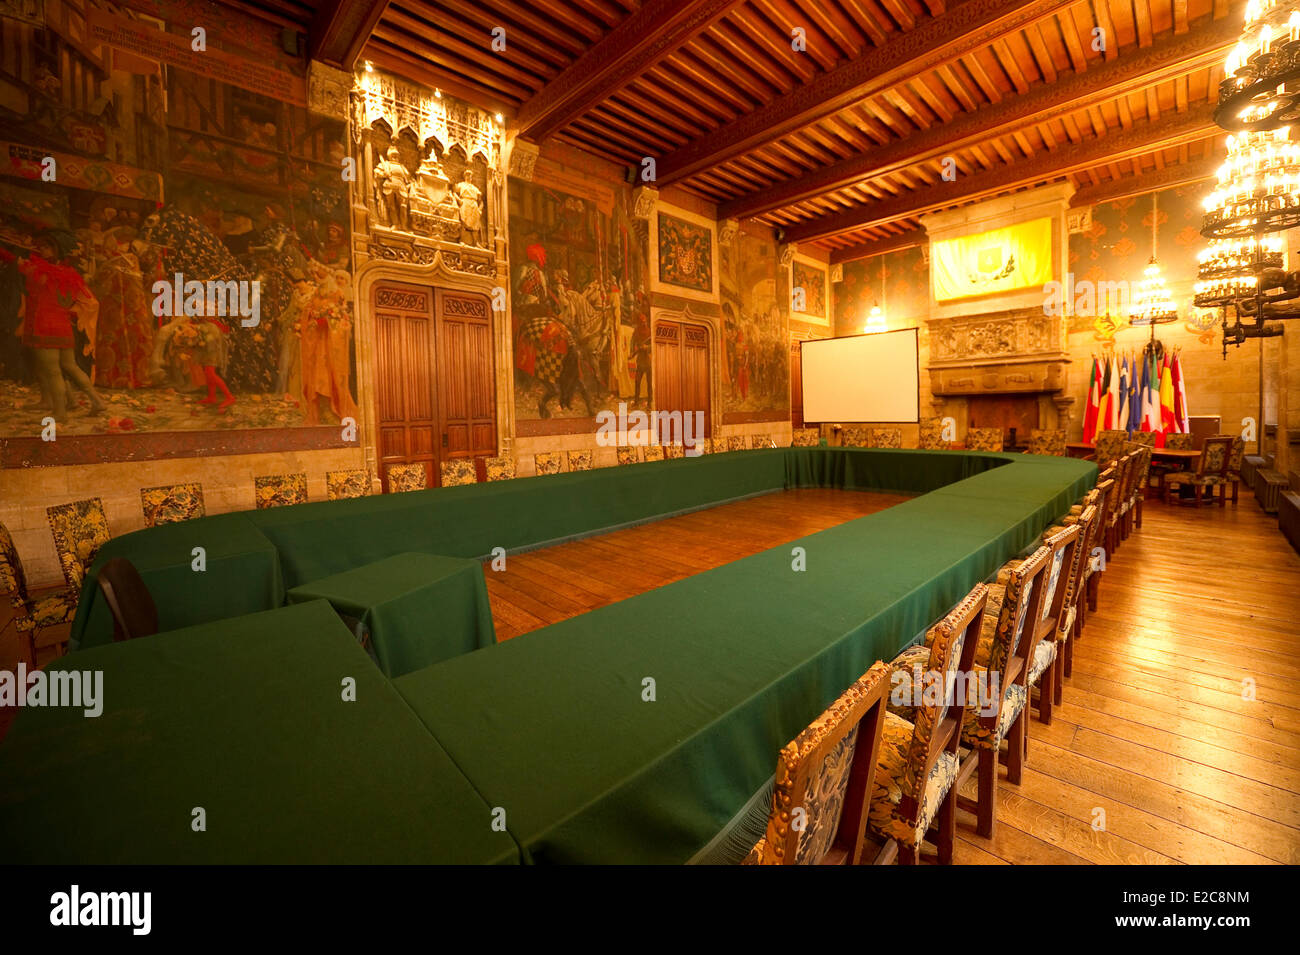 France, Nord, Douai, the large reception room of the city hall attached to the Medevial belfry - Stock Image